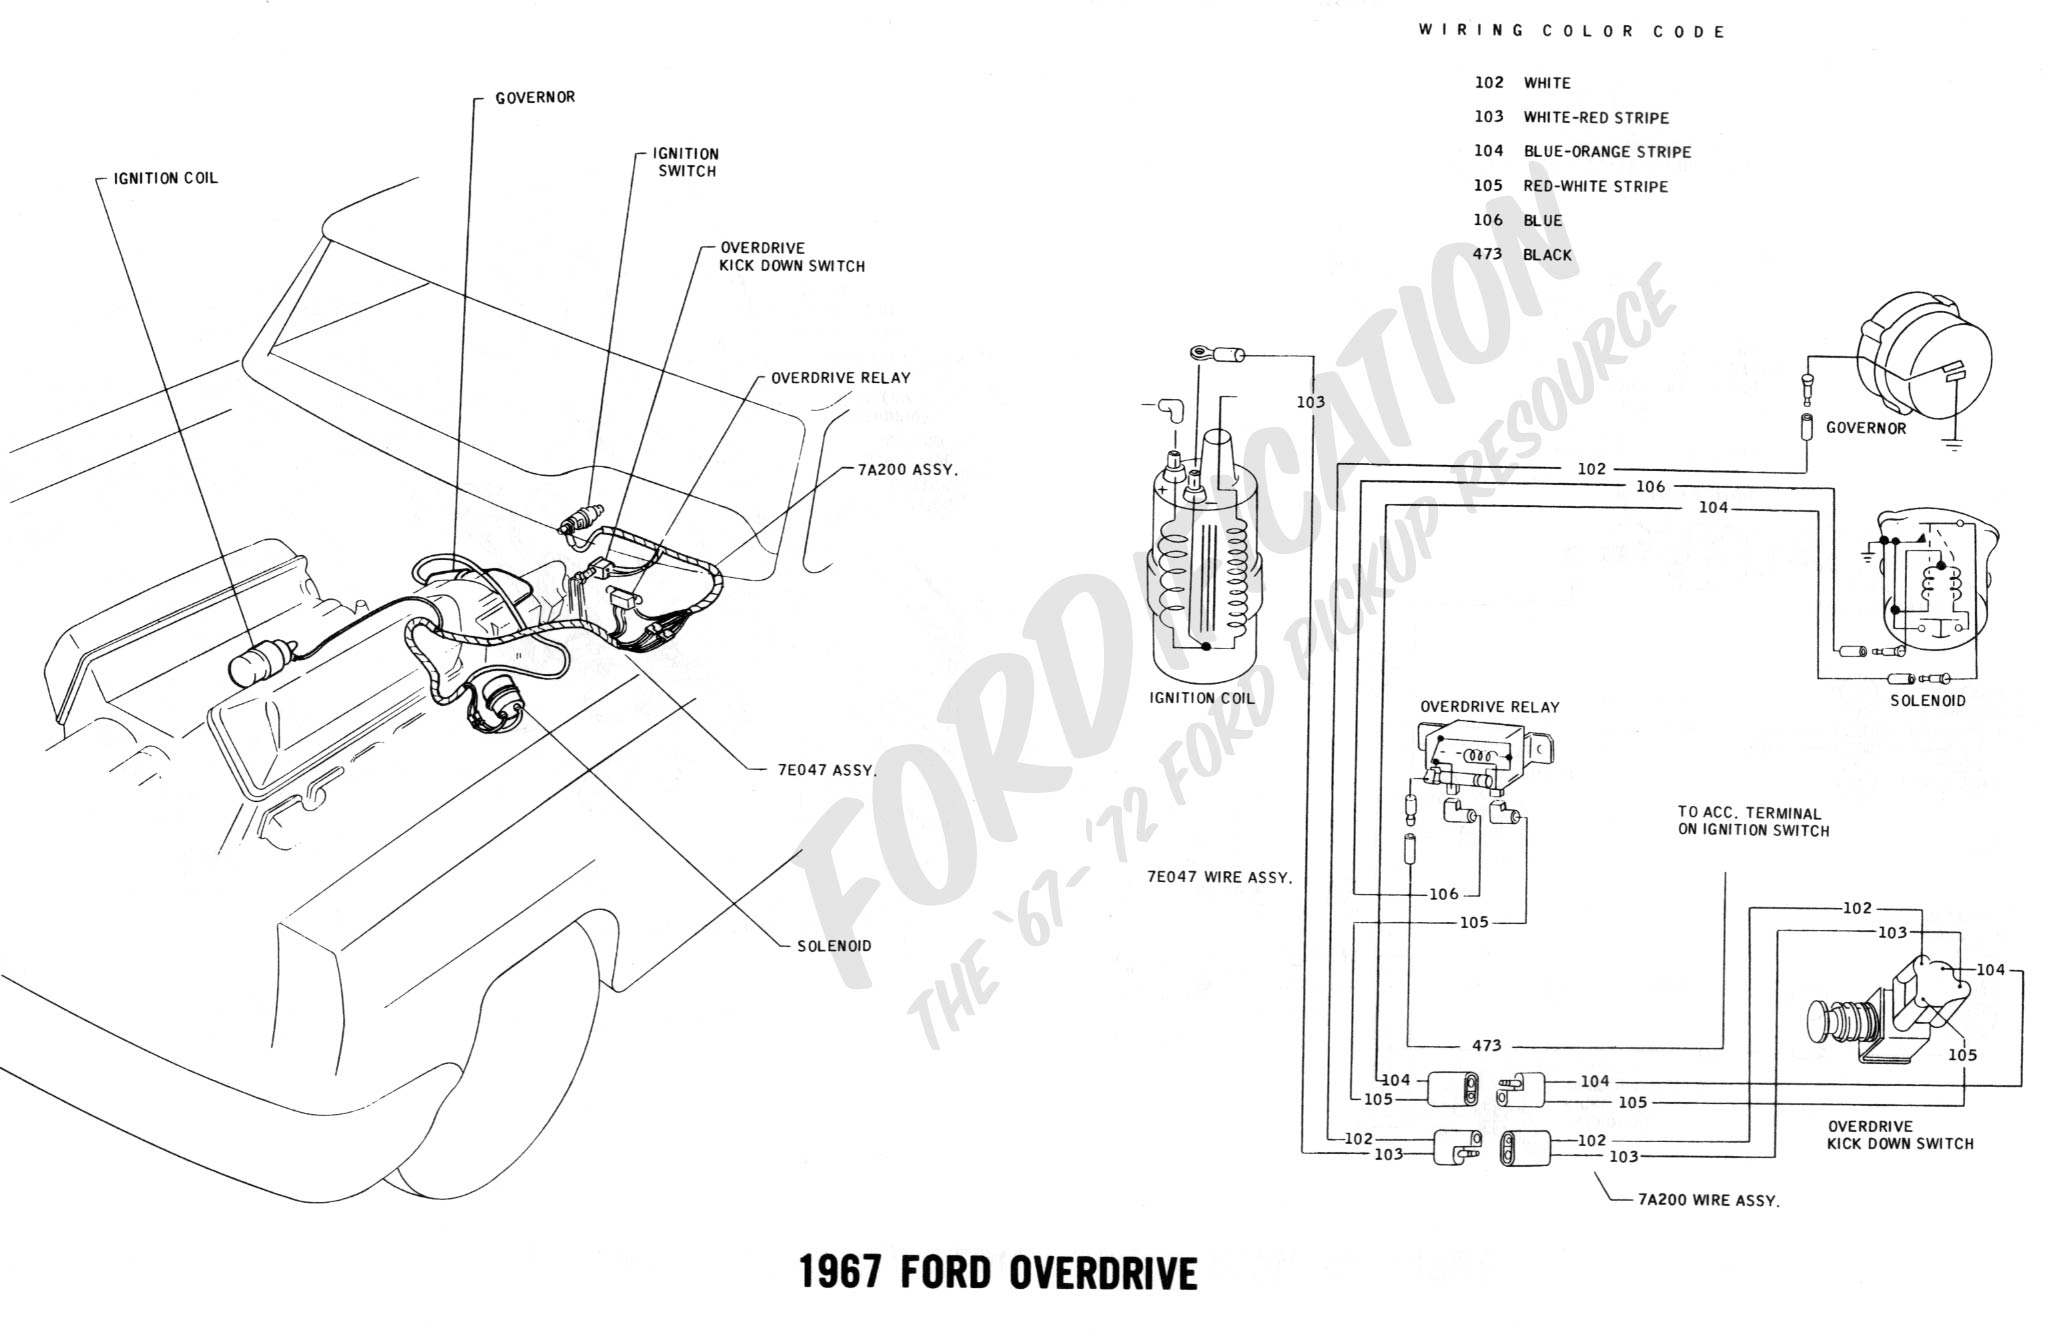 1952 Ford Truck Wiring Diagram Library 1959 F100 1941 9n Technical Drawings And Schematics Section H Rh Fordification Com 56 Overdrive